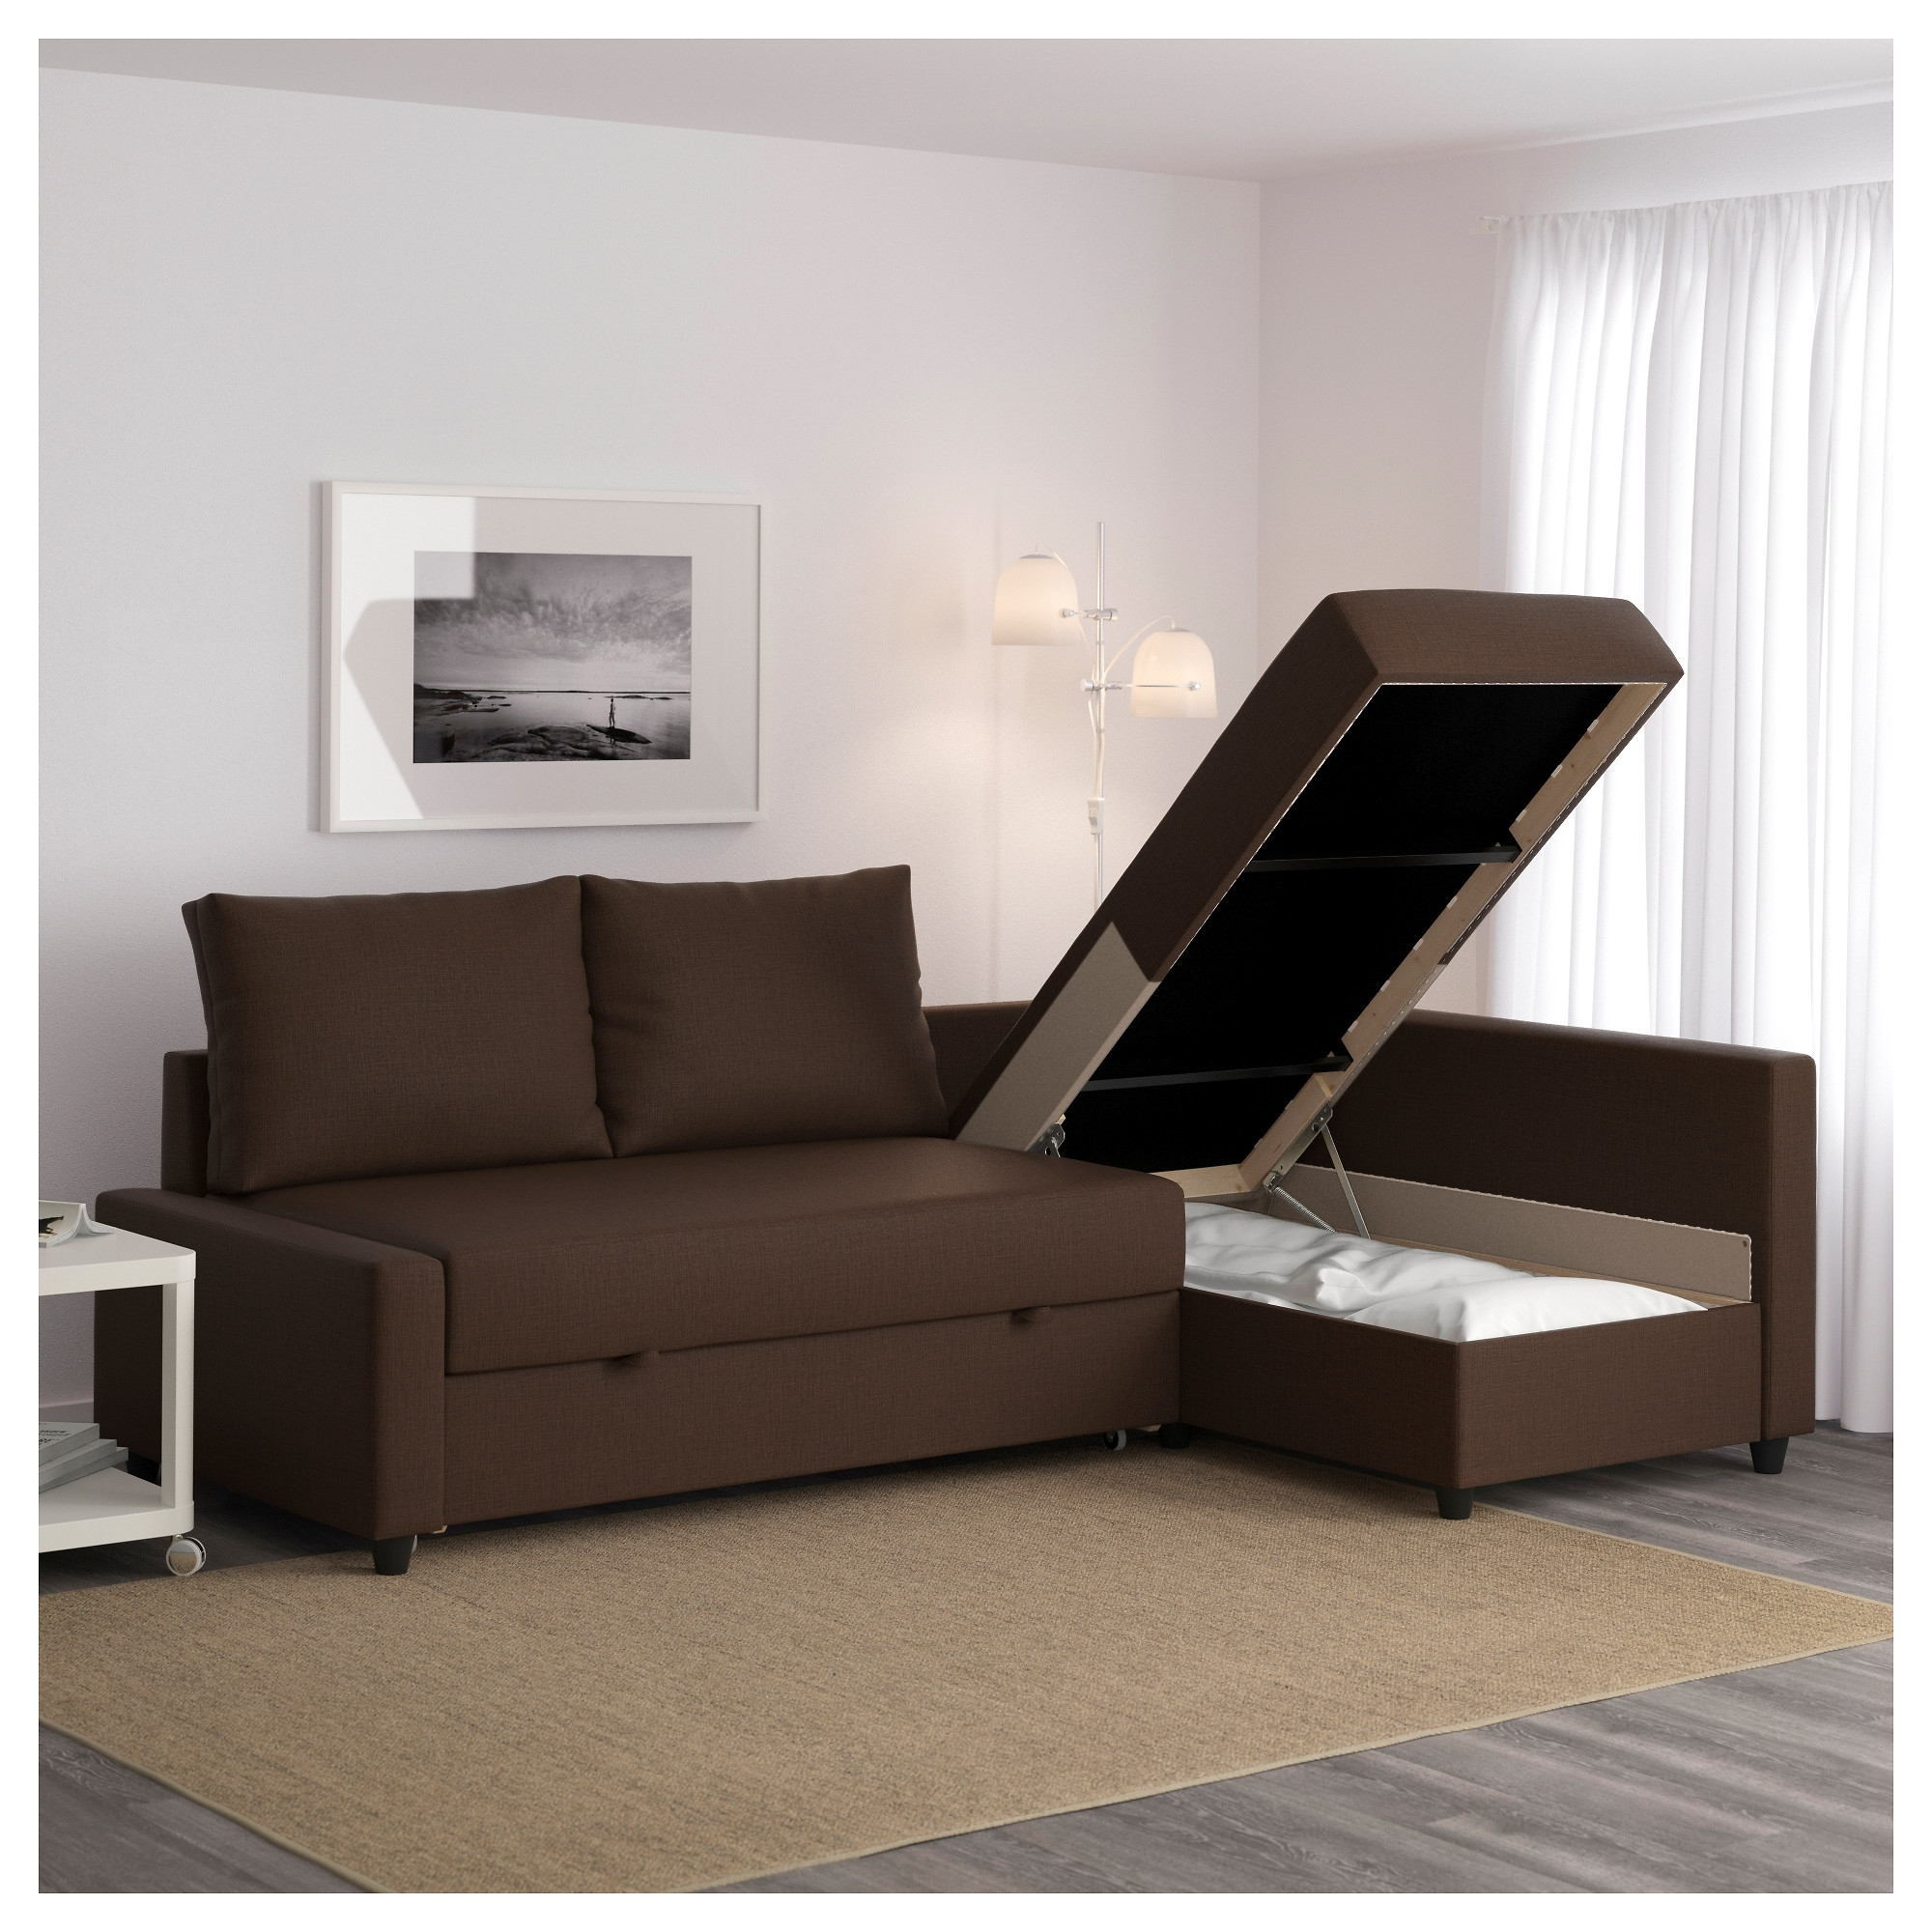 Ikea Corner Sofas With Storage Throughout Most Popular Friheten Corner Sofa Bed With Storage Skiftebo Brown – Ikea (View 5 of 20)